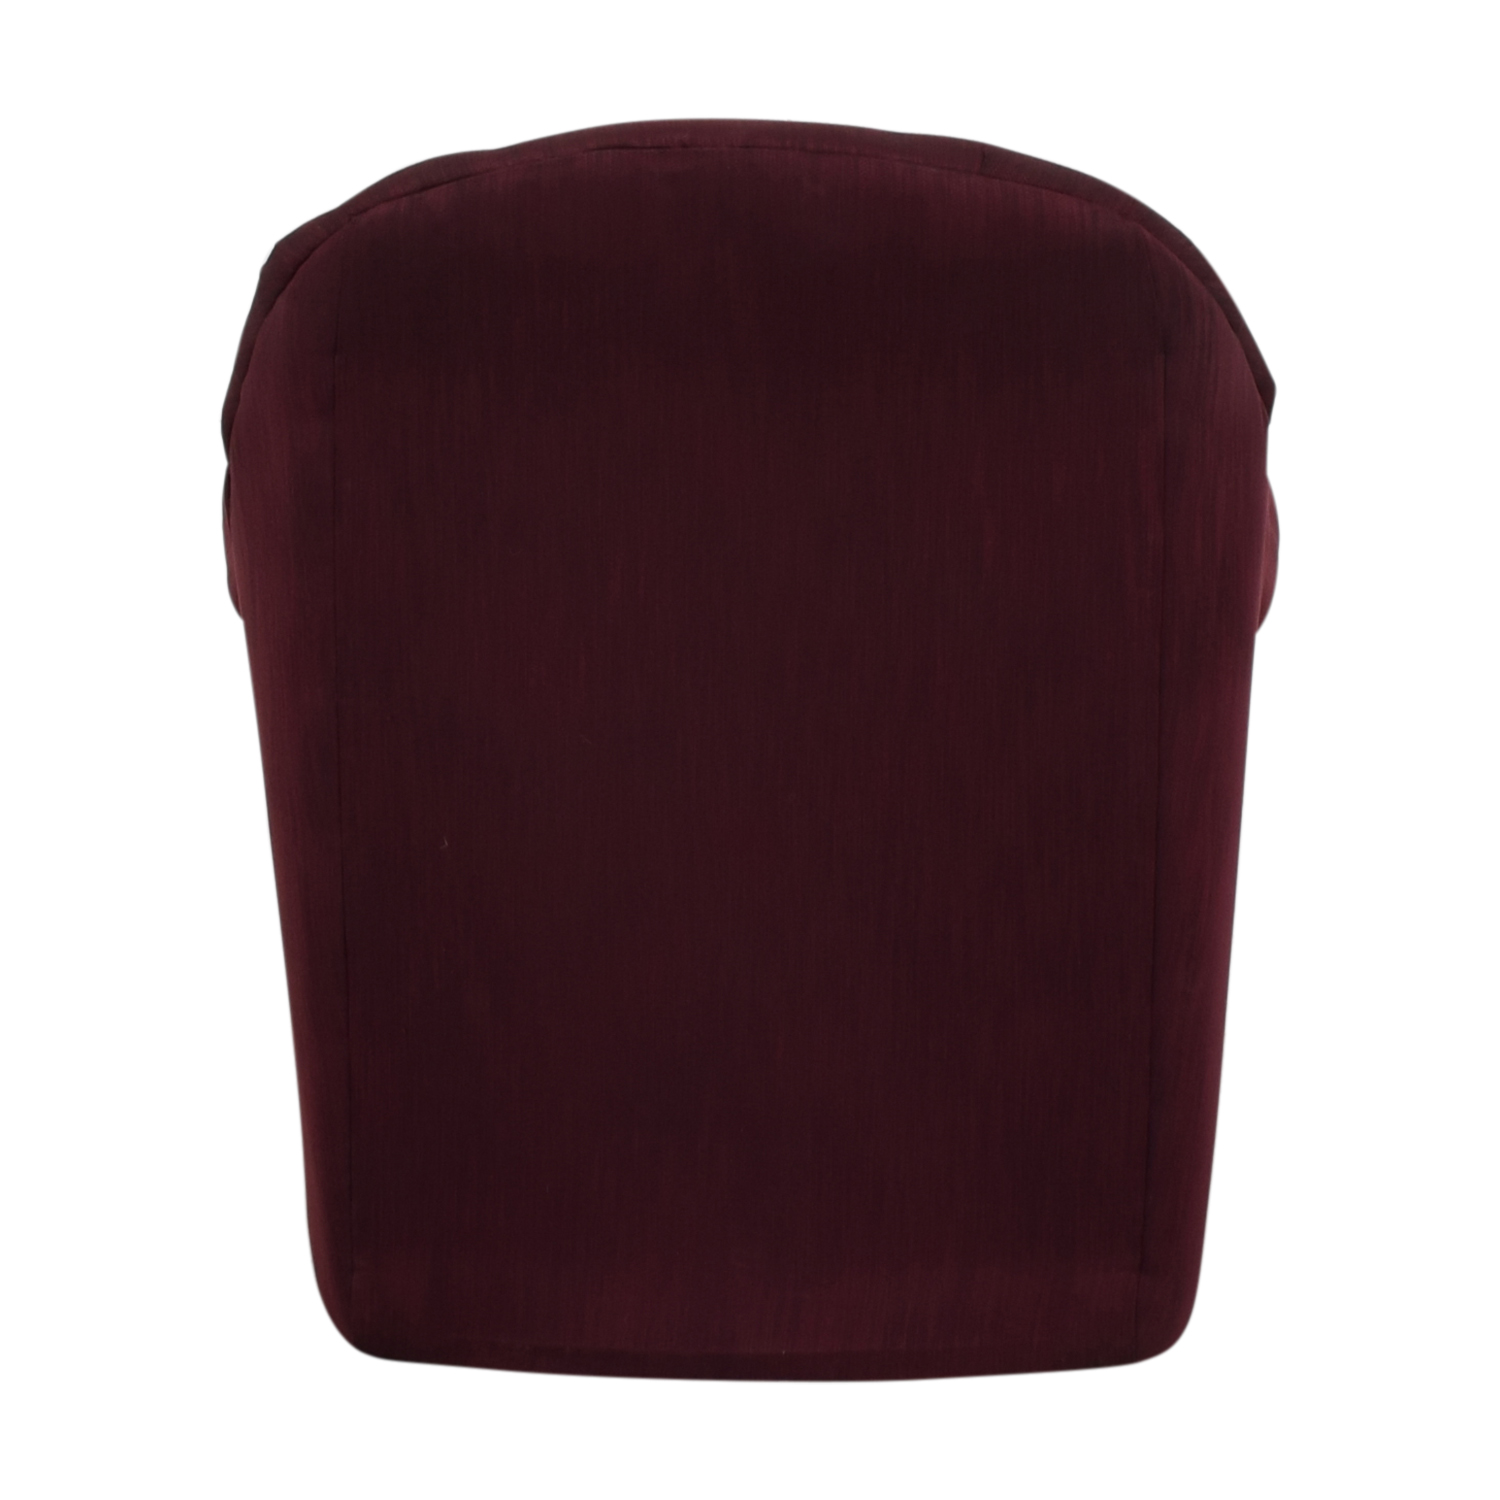 buy Jennifer Furniture Burgundy Accent Chair Jennifer Furniture Chairs